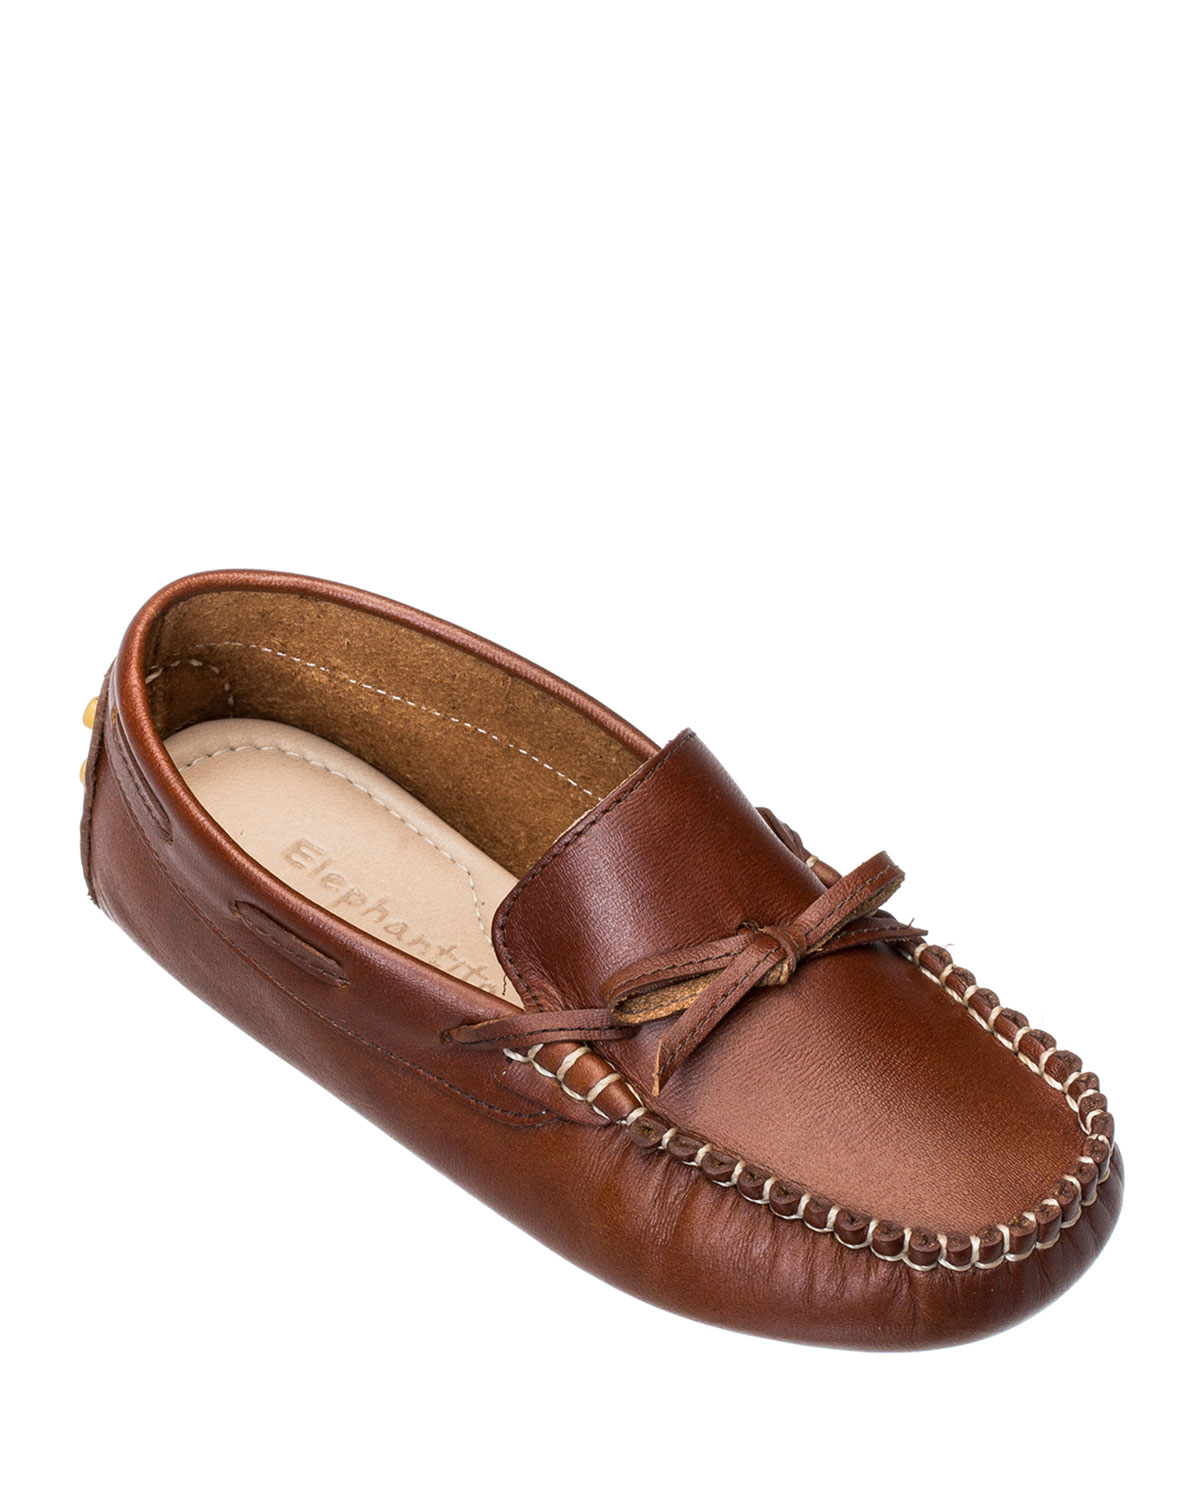 Elephantito Kids Driver Loafers for Baby-K